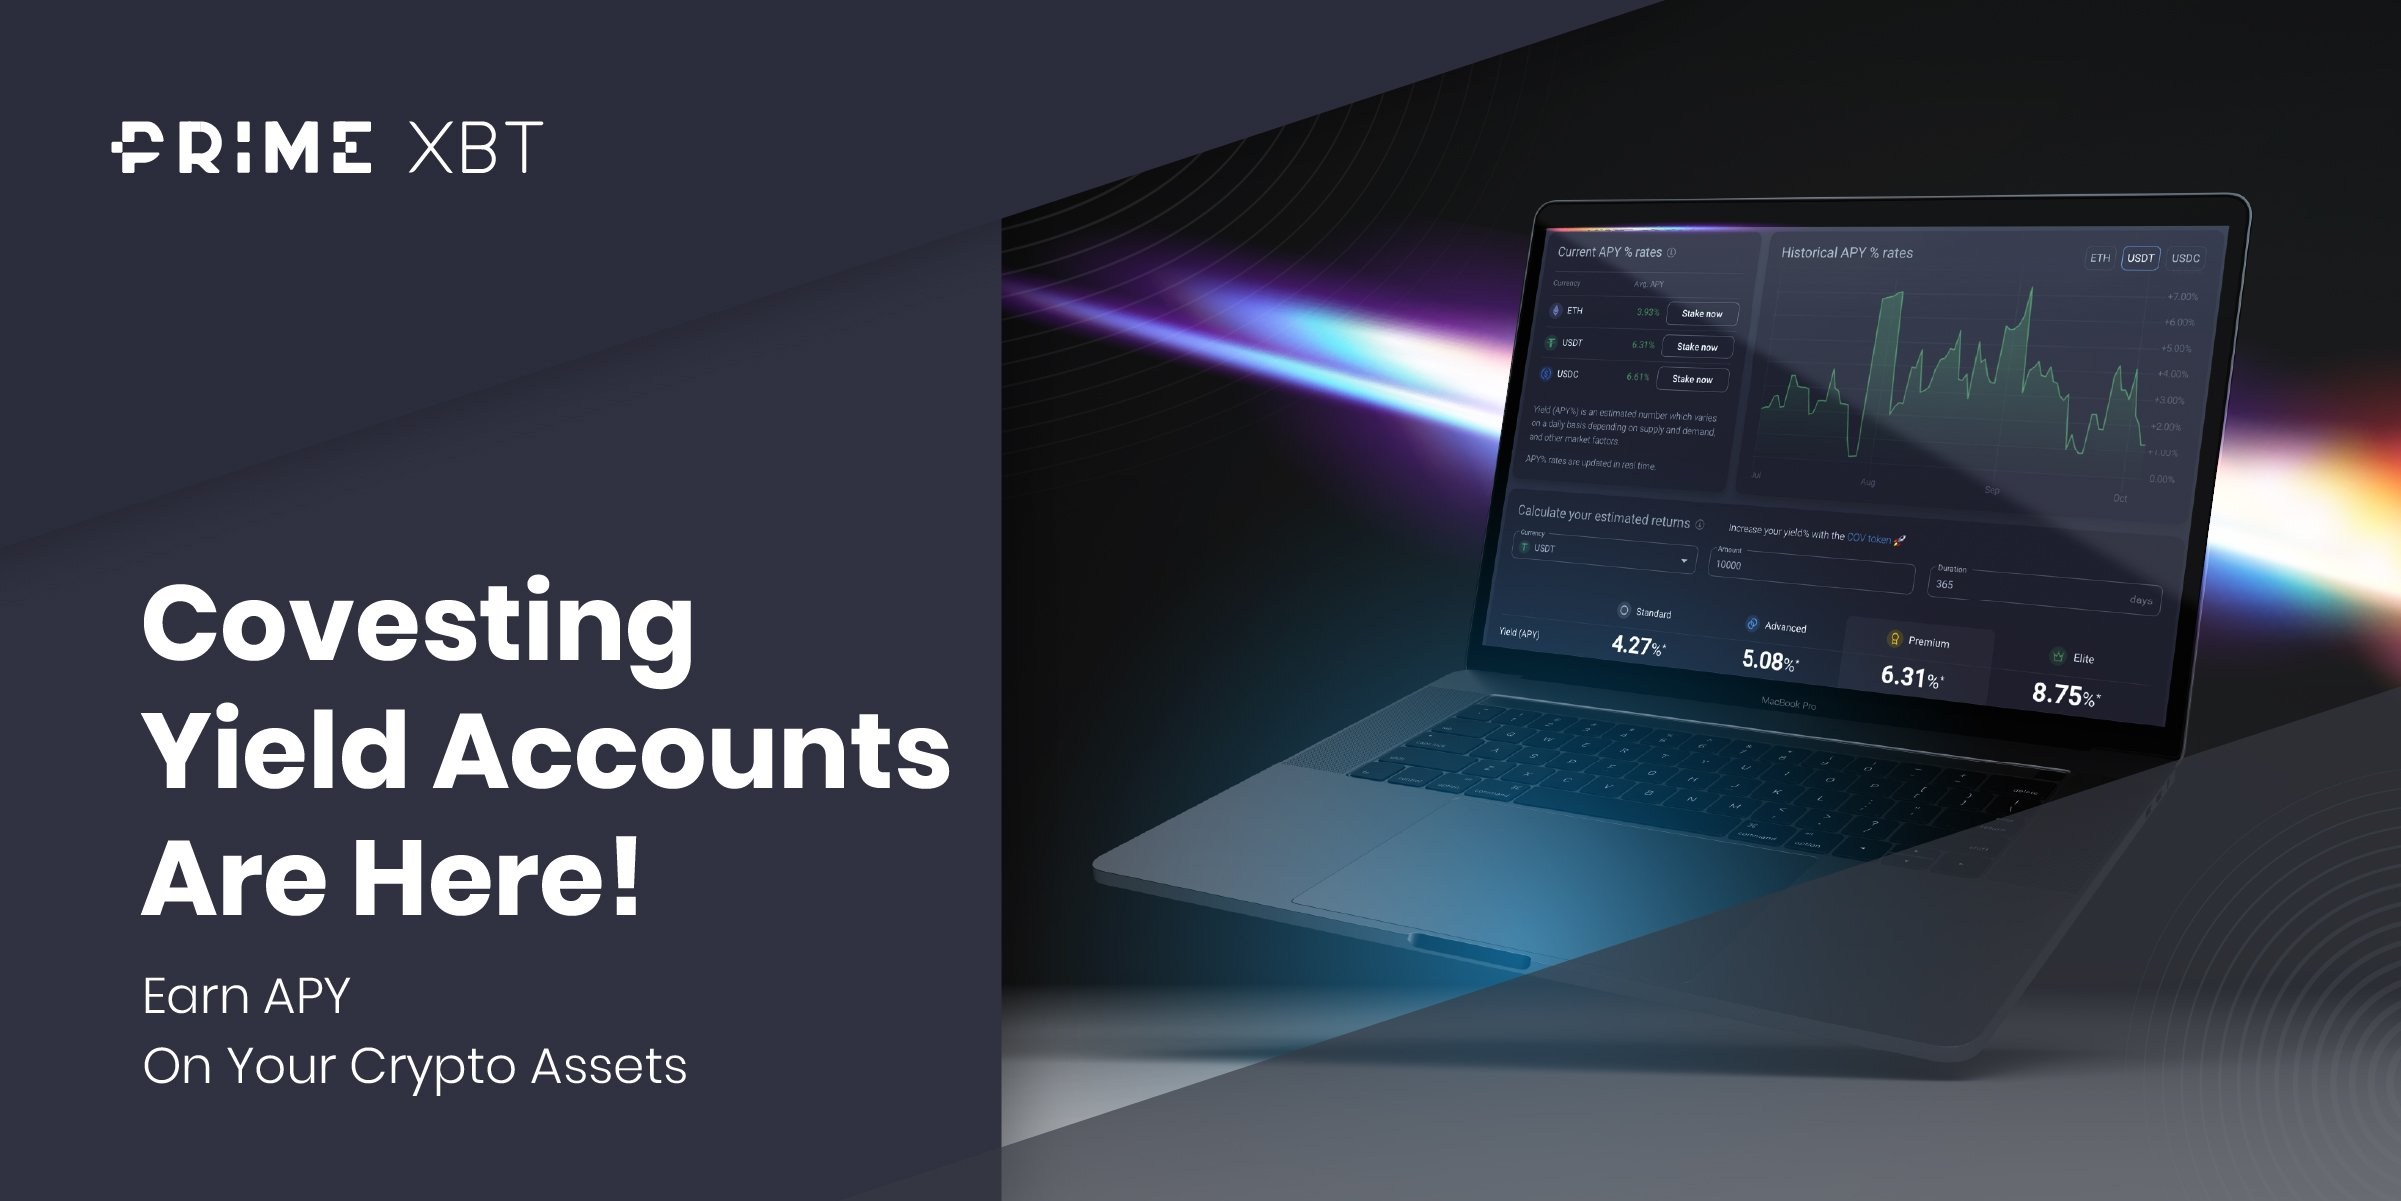 Covesting Yield Accounts Are Here! Earn APY On Idle Crypto Assets - Cov Yield Accounts